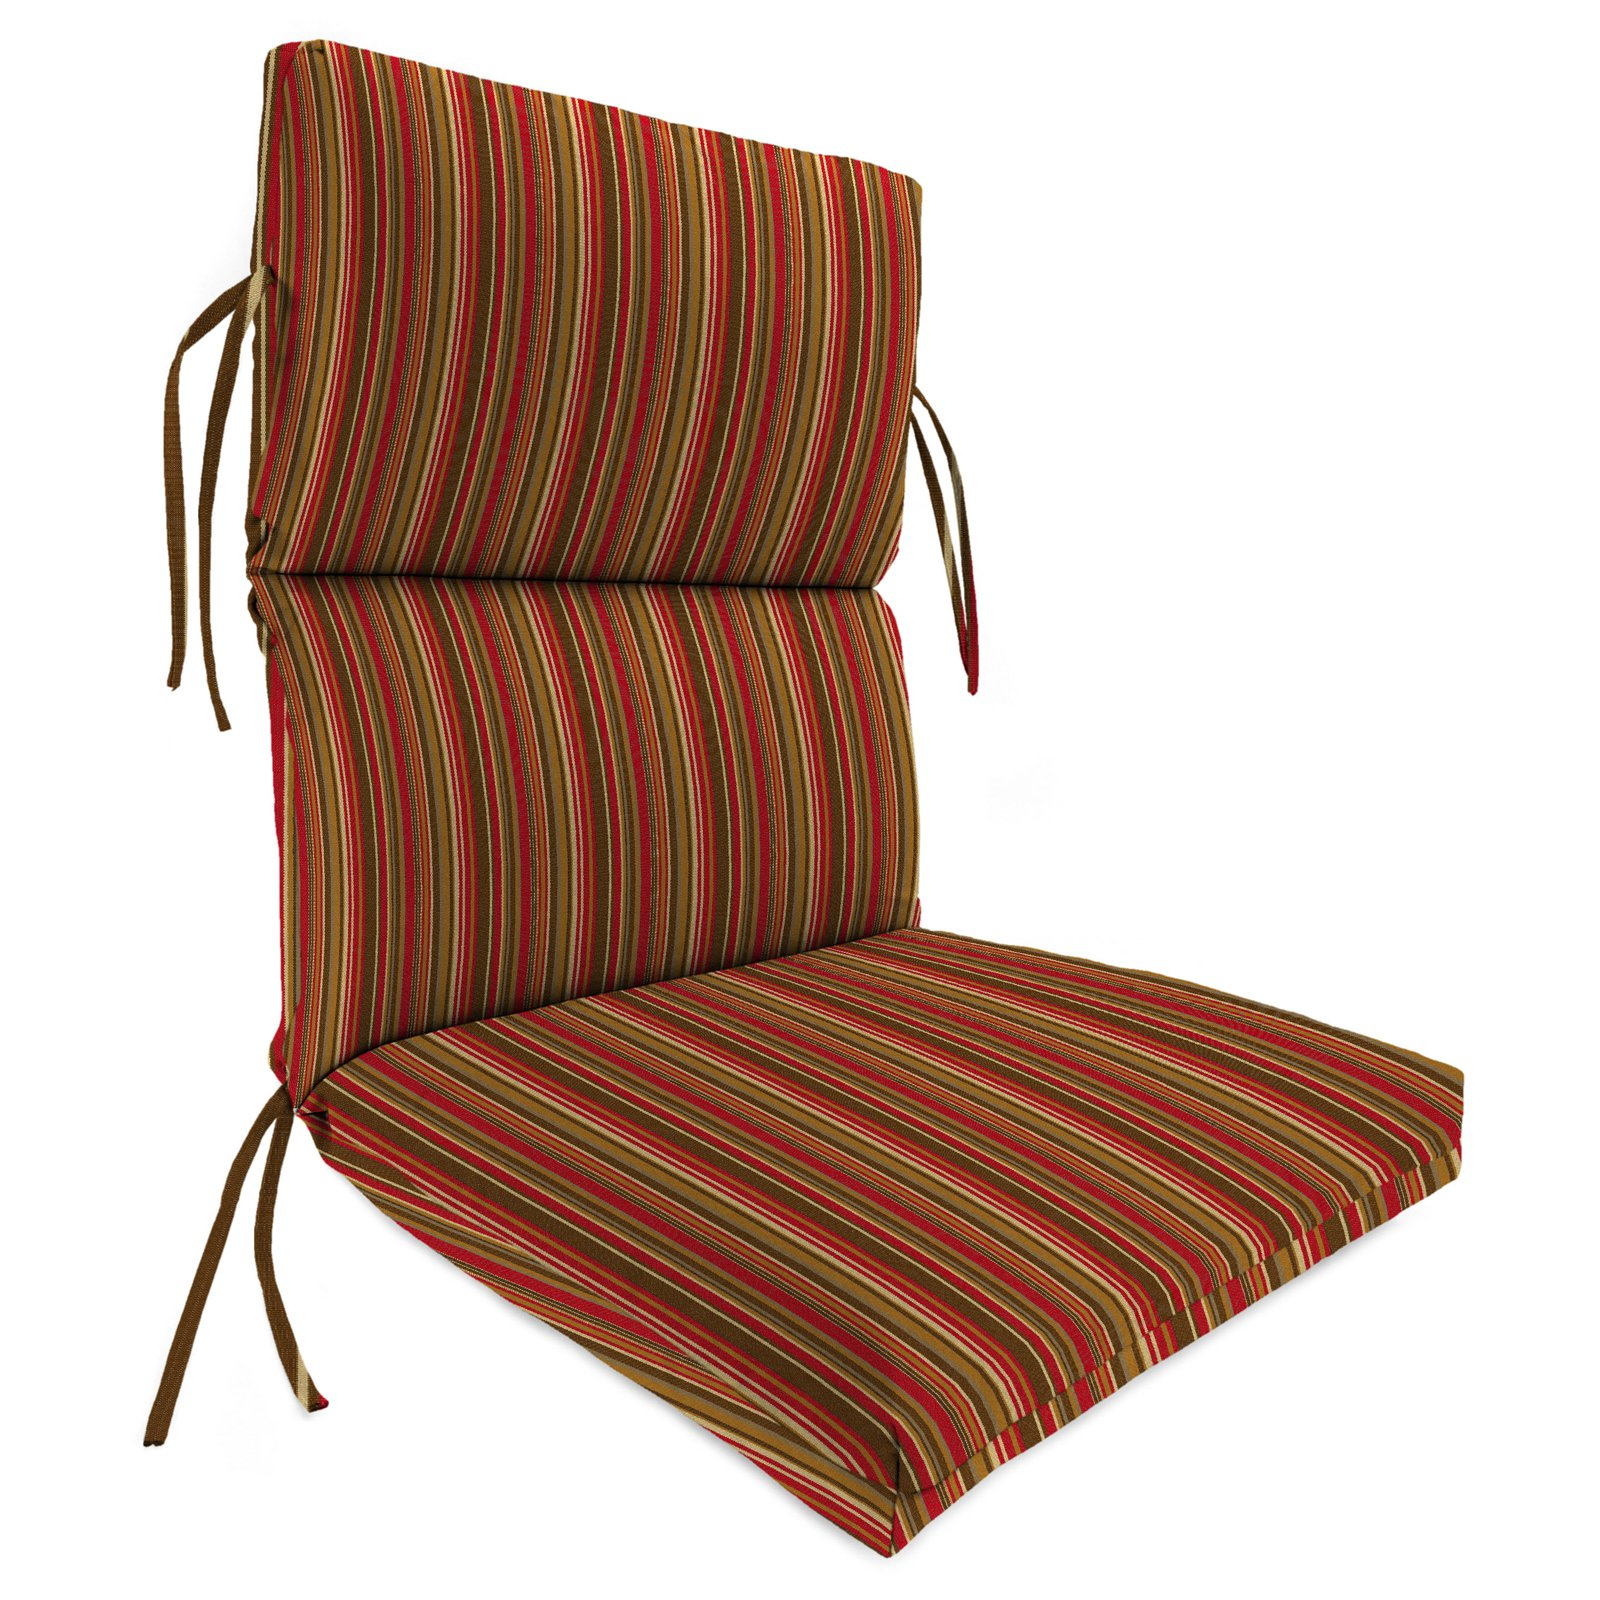 outdoor patio chair cushions high back outdoor chair cushion for patio striped